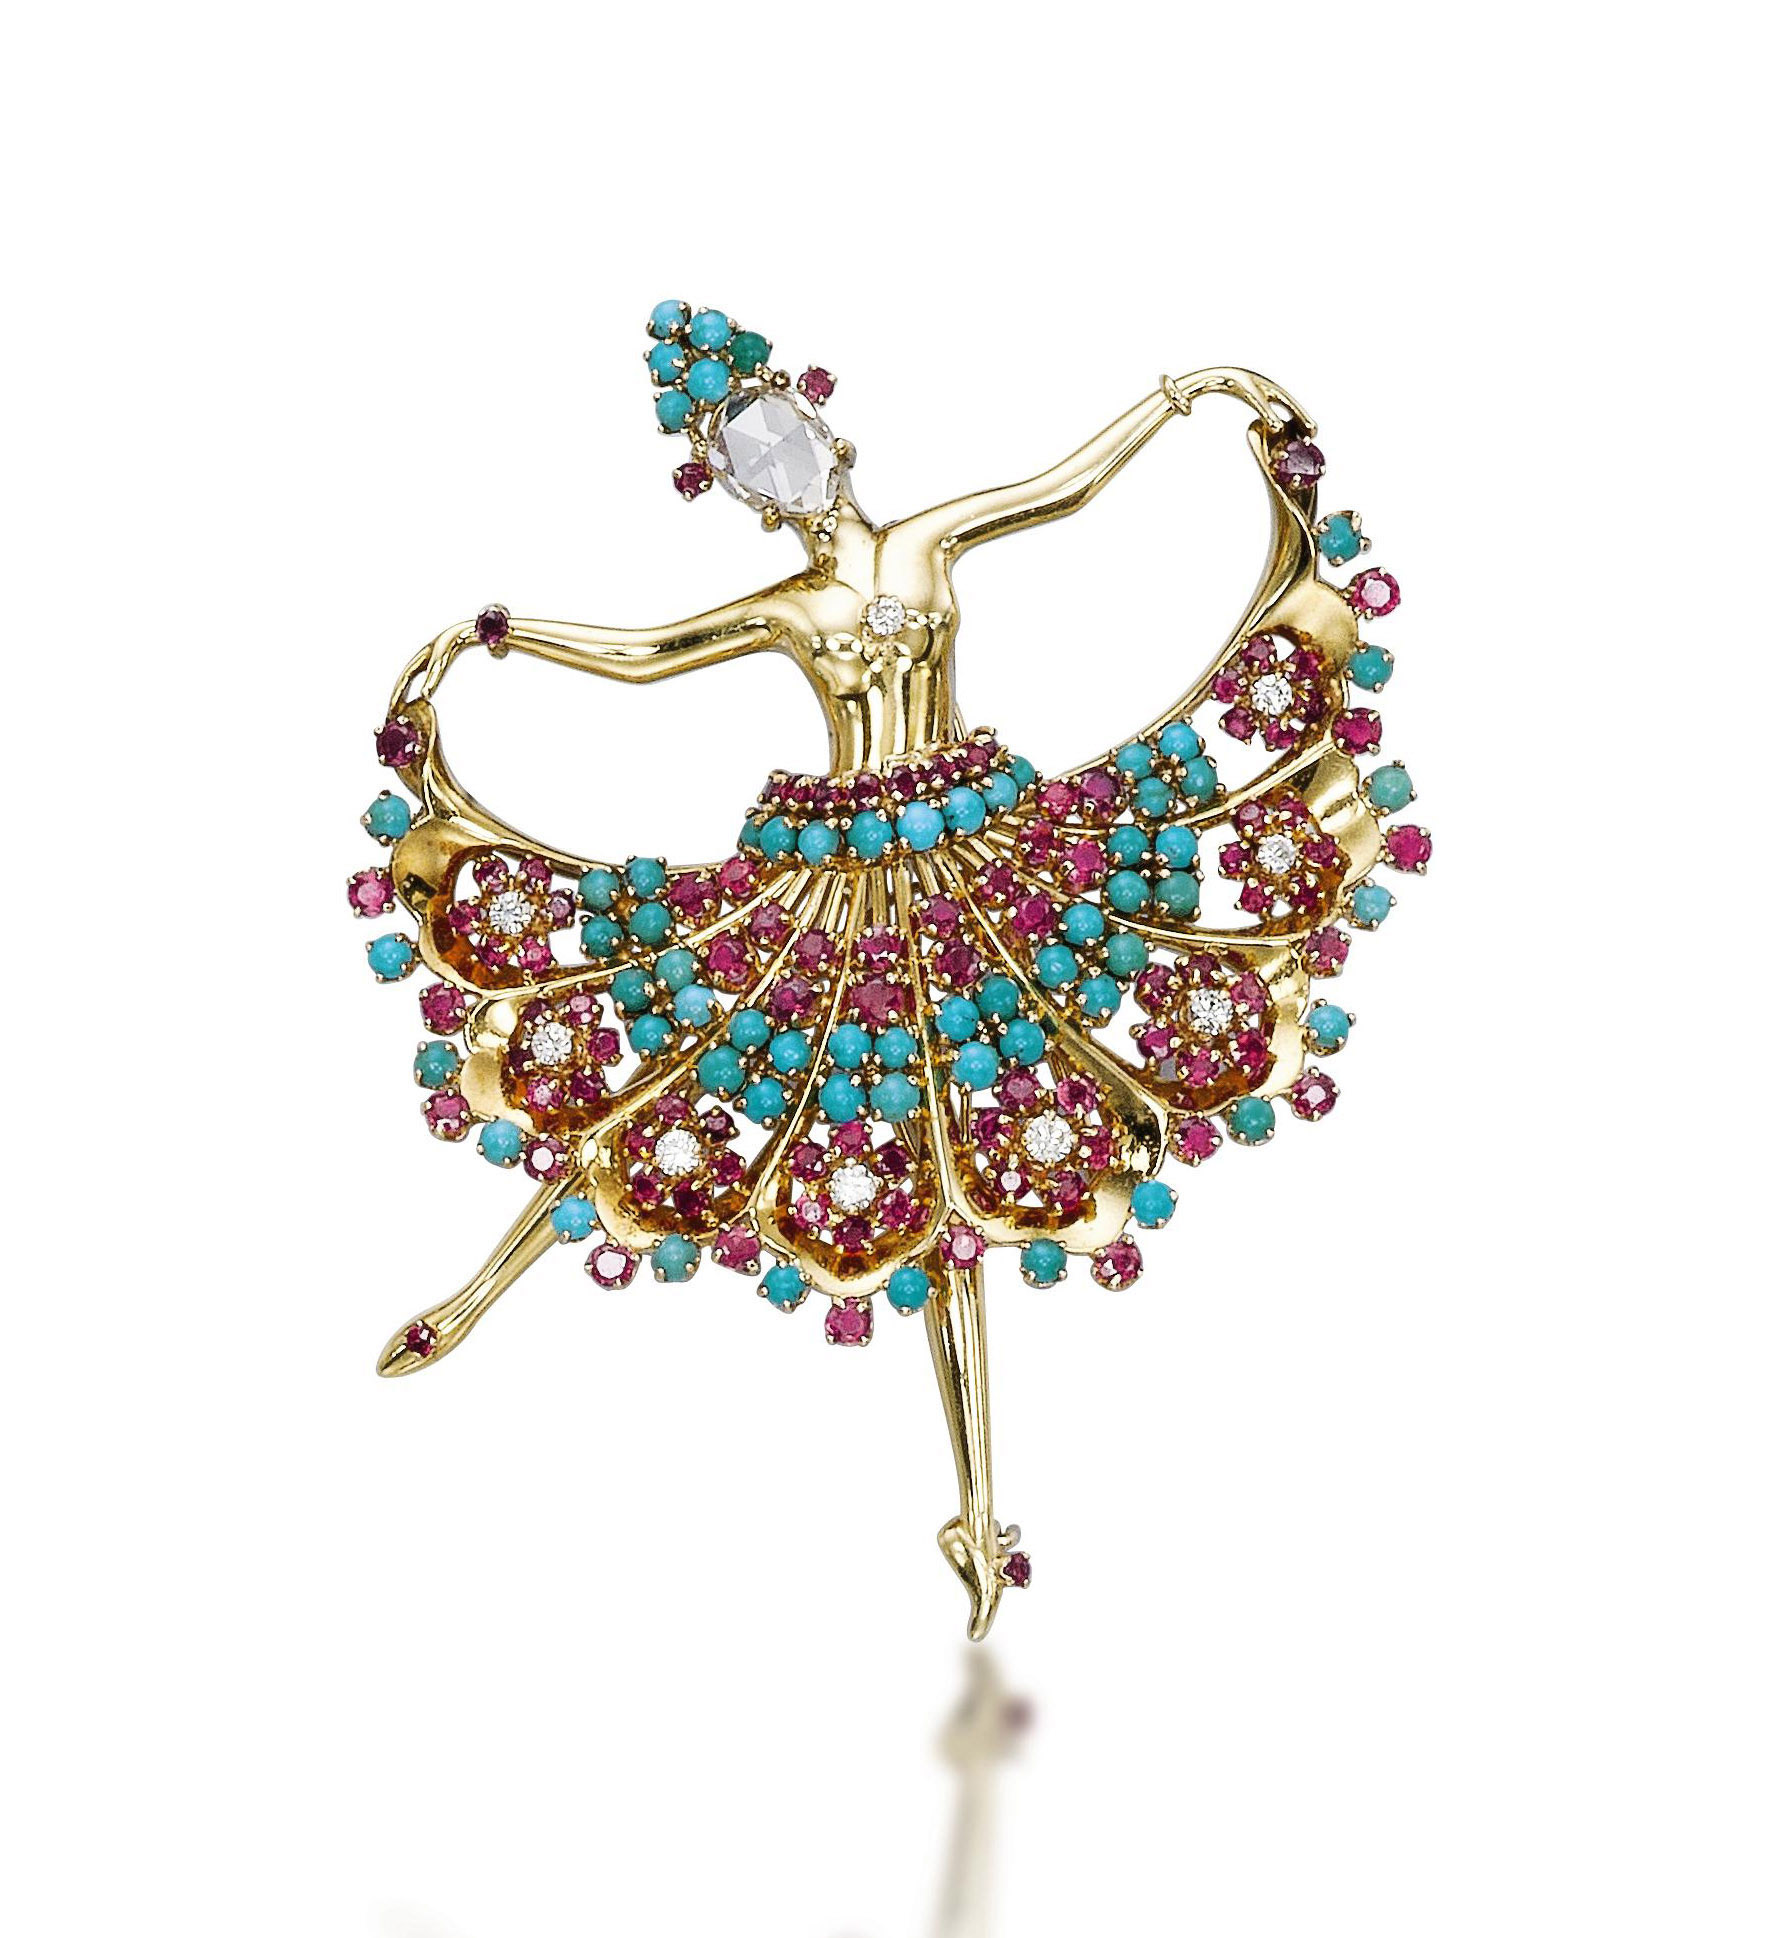 A MULTI-GEM BALLERINA BROOCH, BY JOHN RUBEL